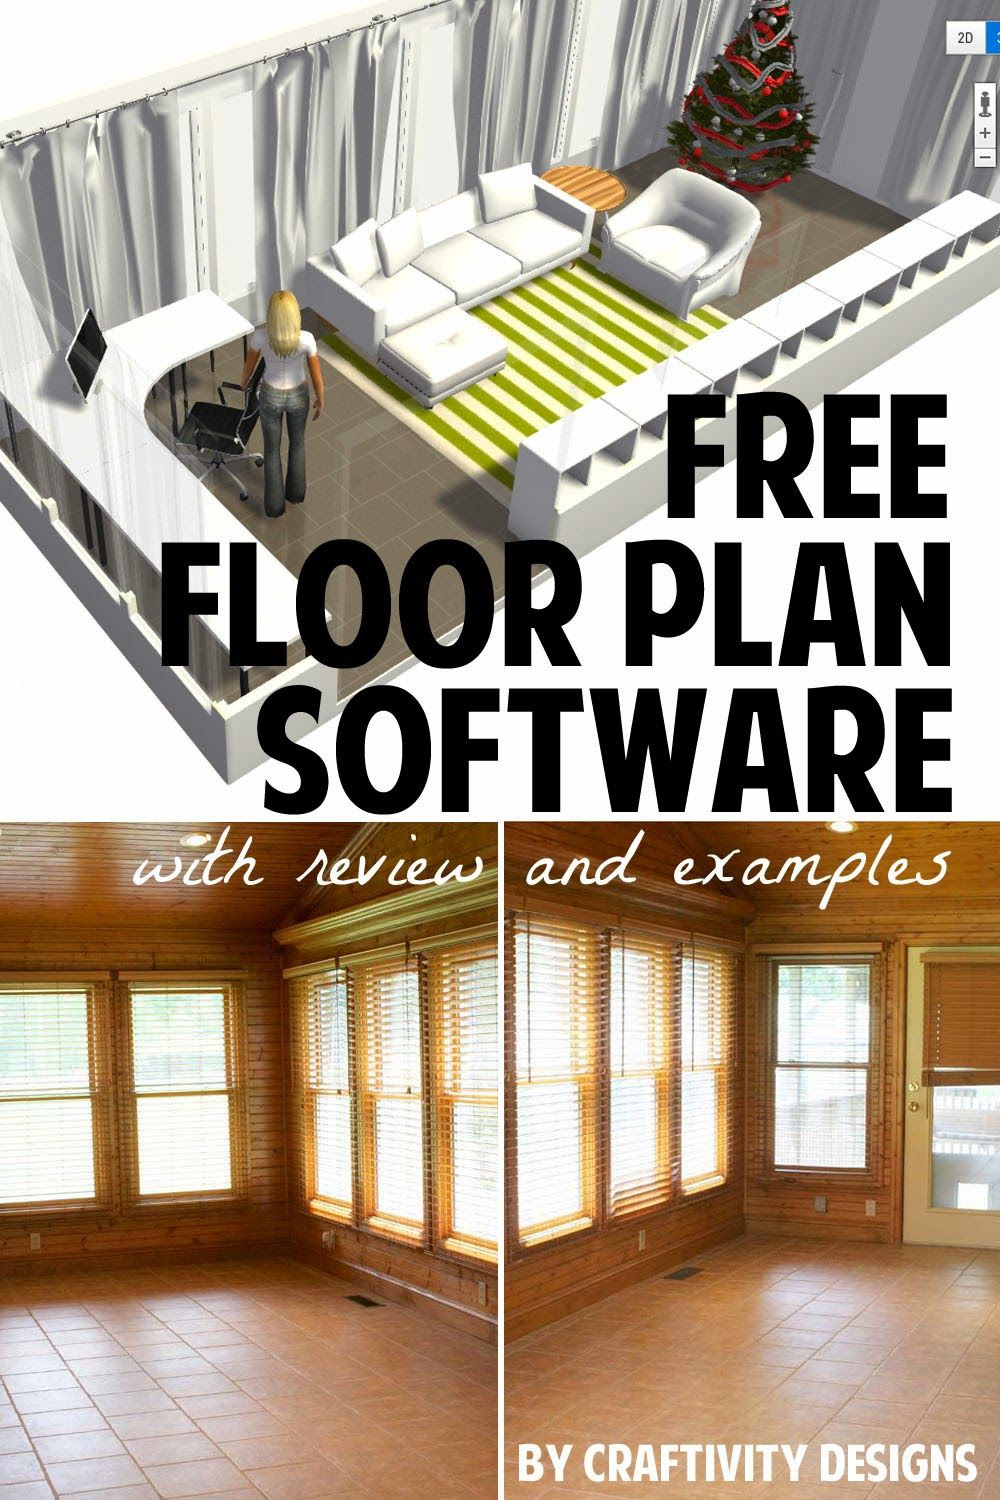 Draw Your Own House Plans App Luxury Quick Easy and Free Floor Plan software